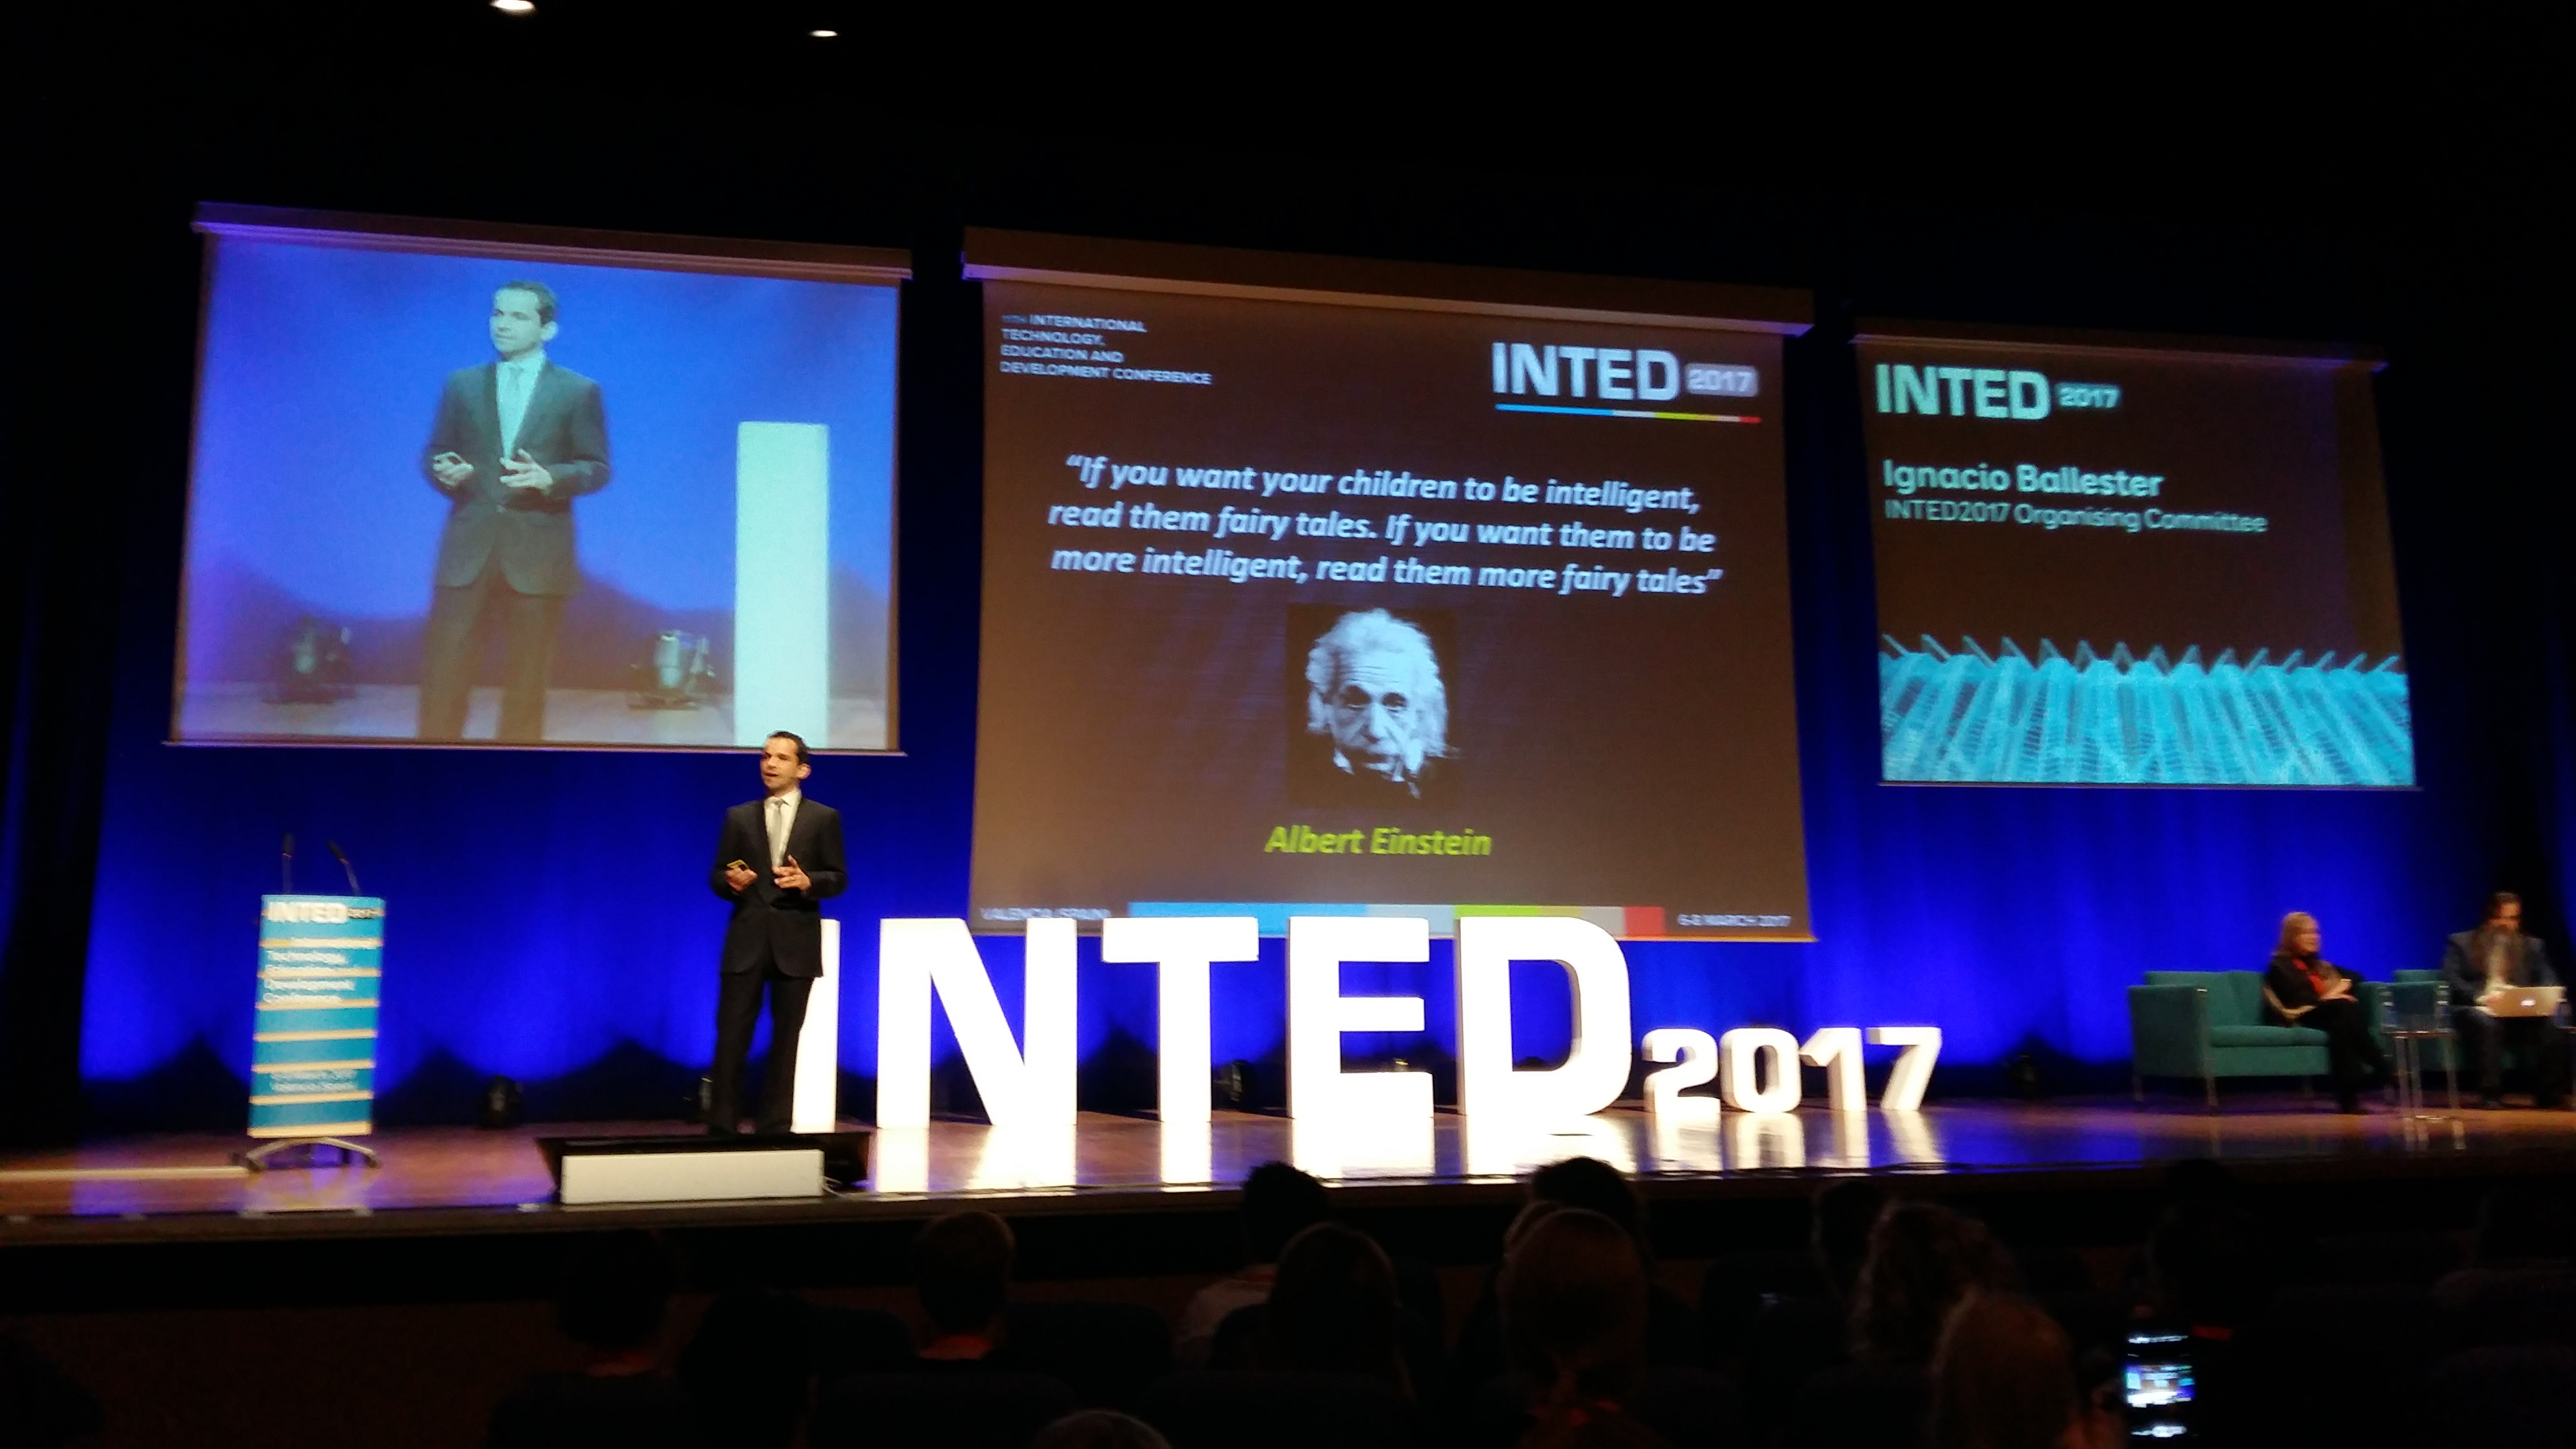 Inted2017